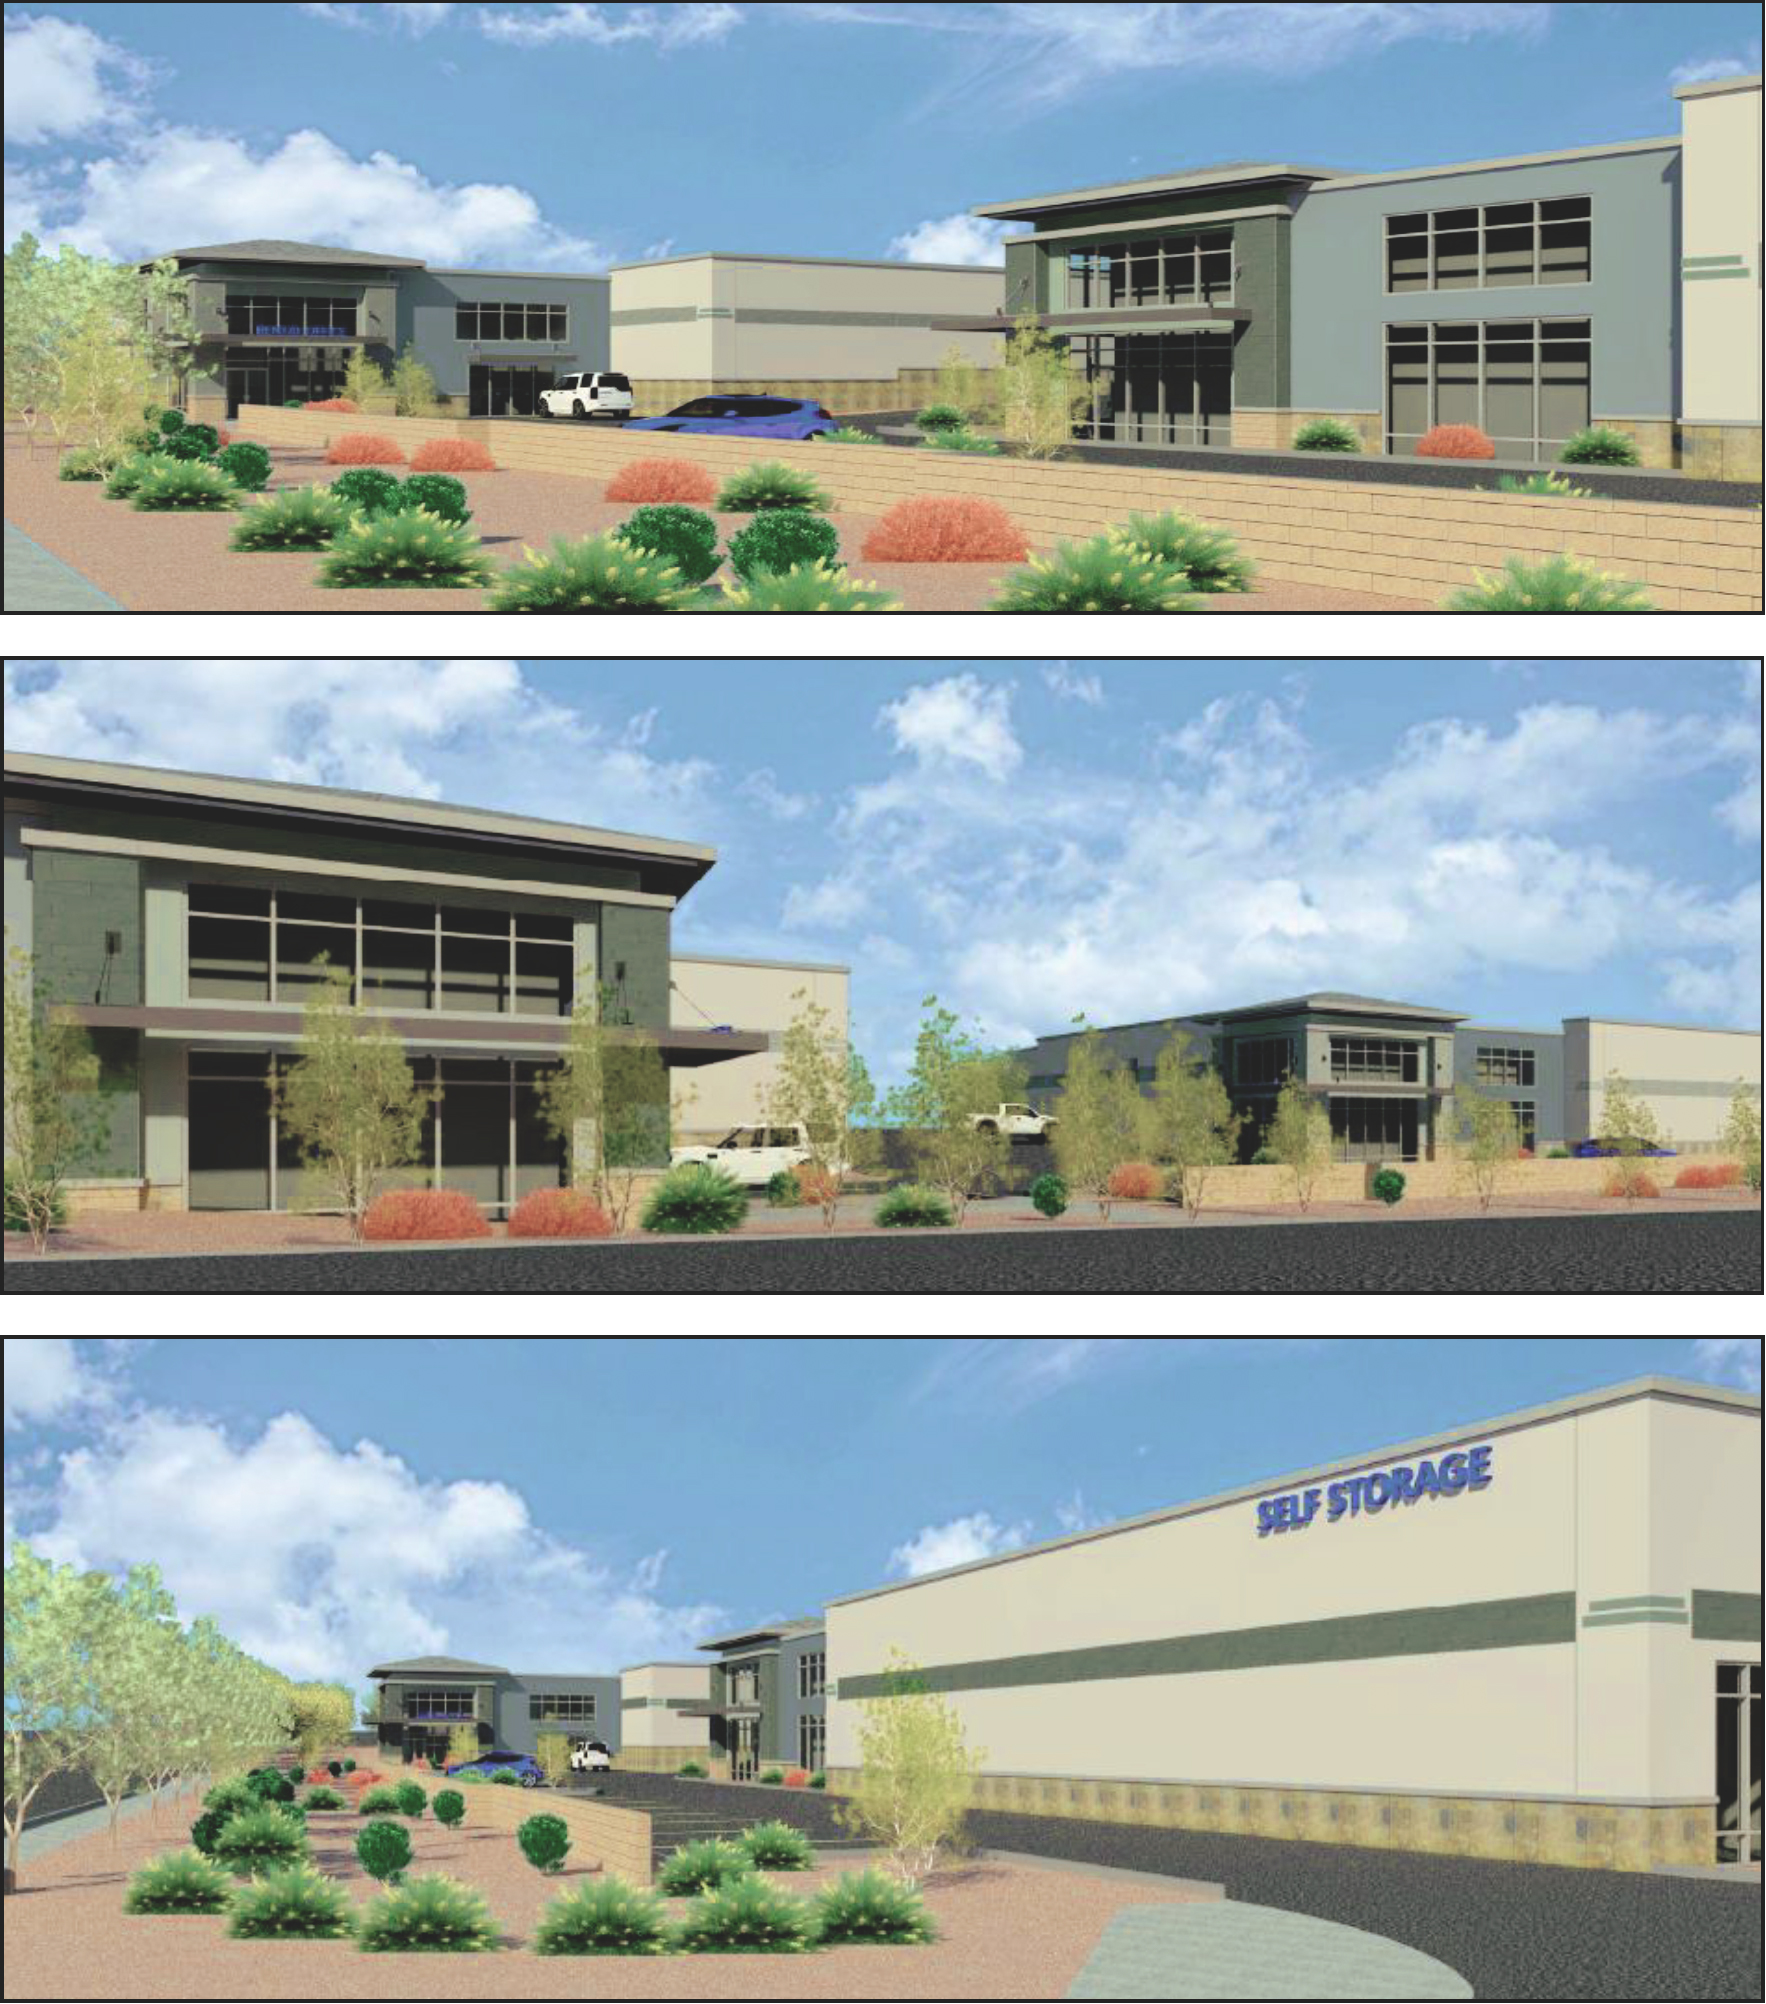 Arizona - Self-Storage Construction